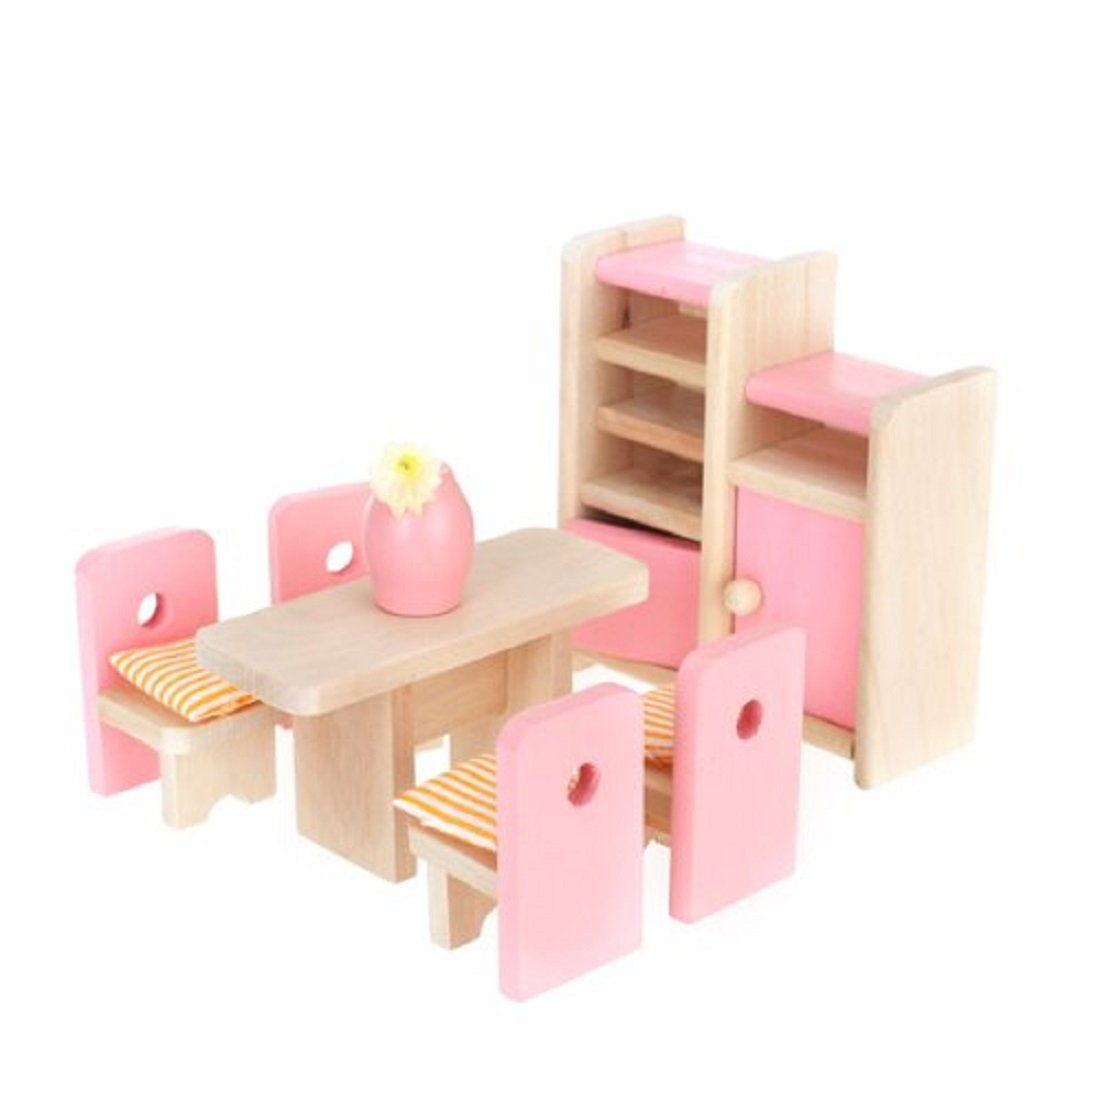 cheap wooden dollhouse furniture. Amazon.com: Aisster(TM) Wooden Furniture Dollhouse Miniature Pink Dining Room Set Children Toy: Toys \u0026 Games Cheap